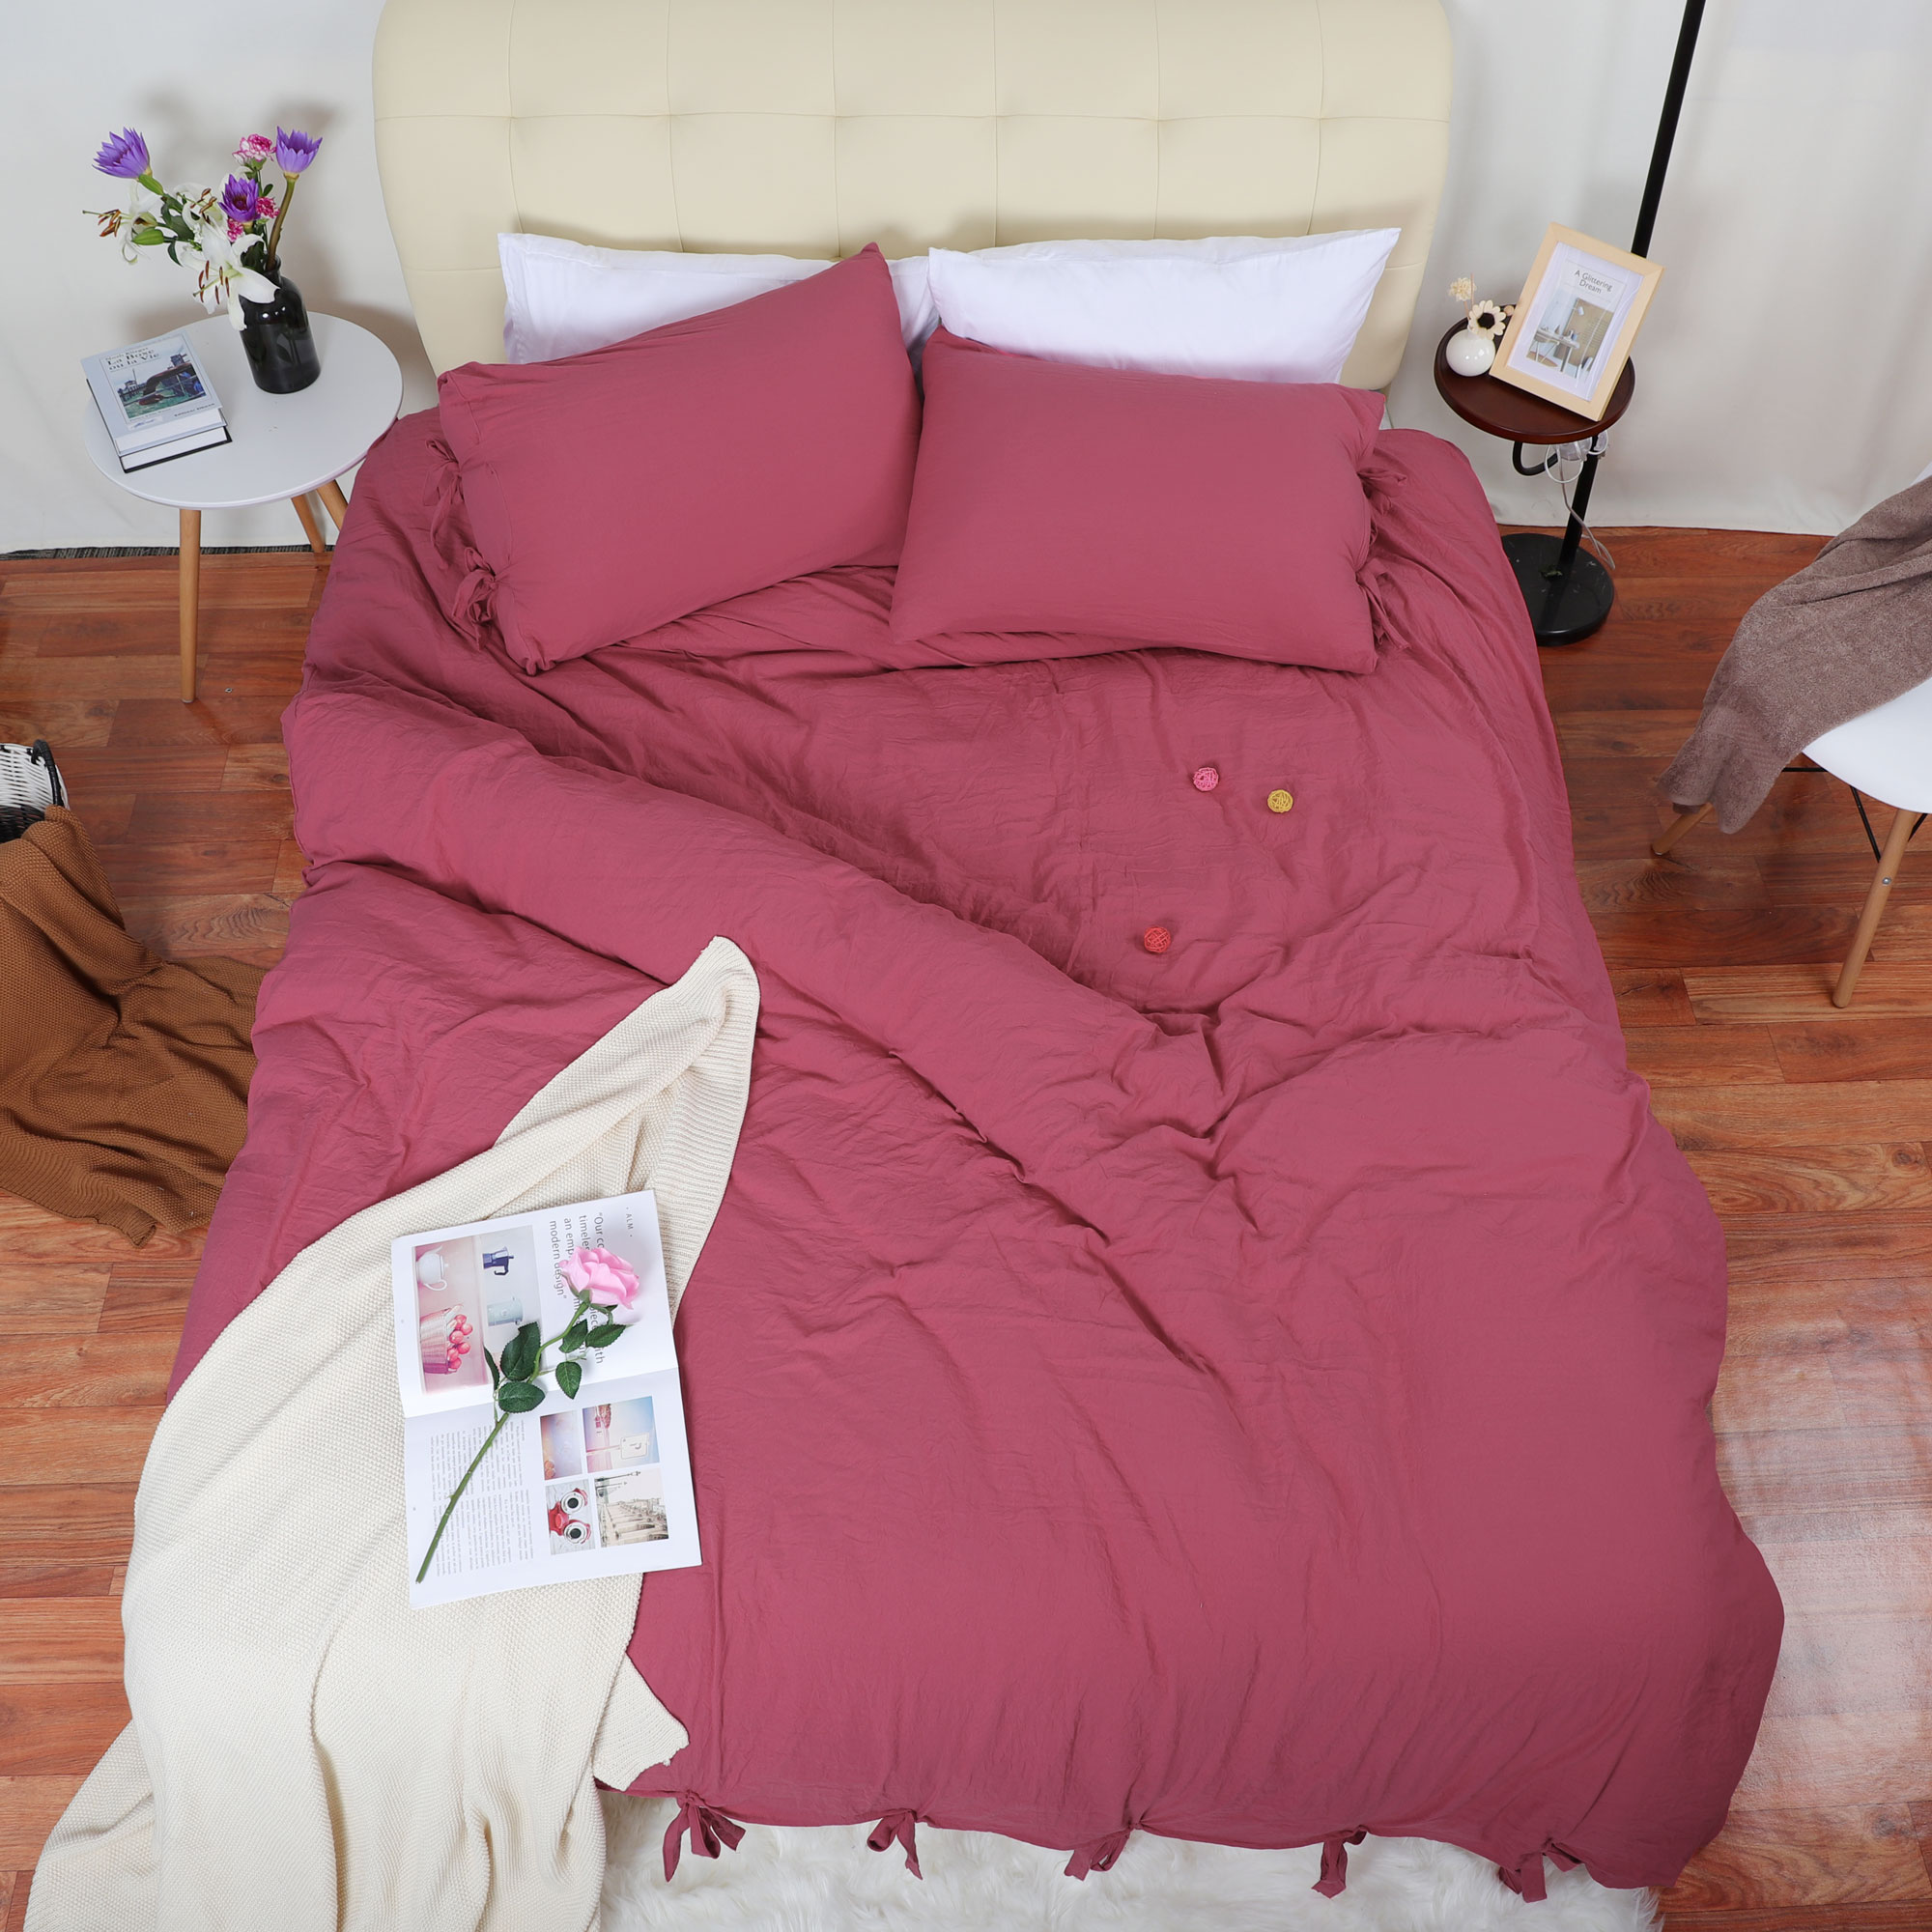 Duvet Cover And Shams Egyptian Comfort 1800 Count Bedding Set Red Queen - image 4 of 8